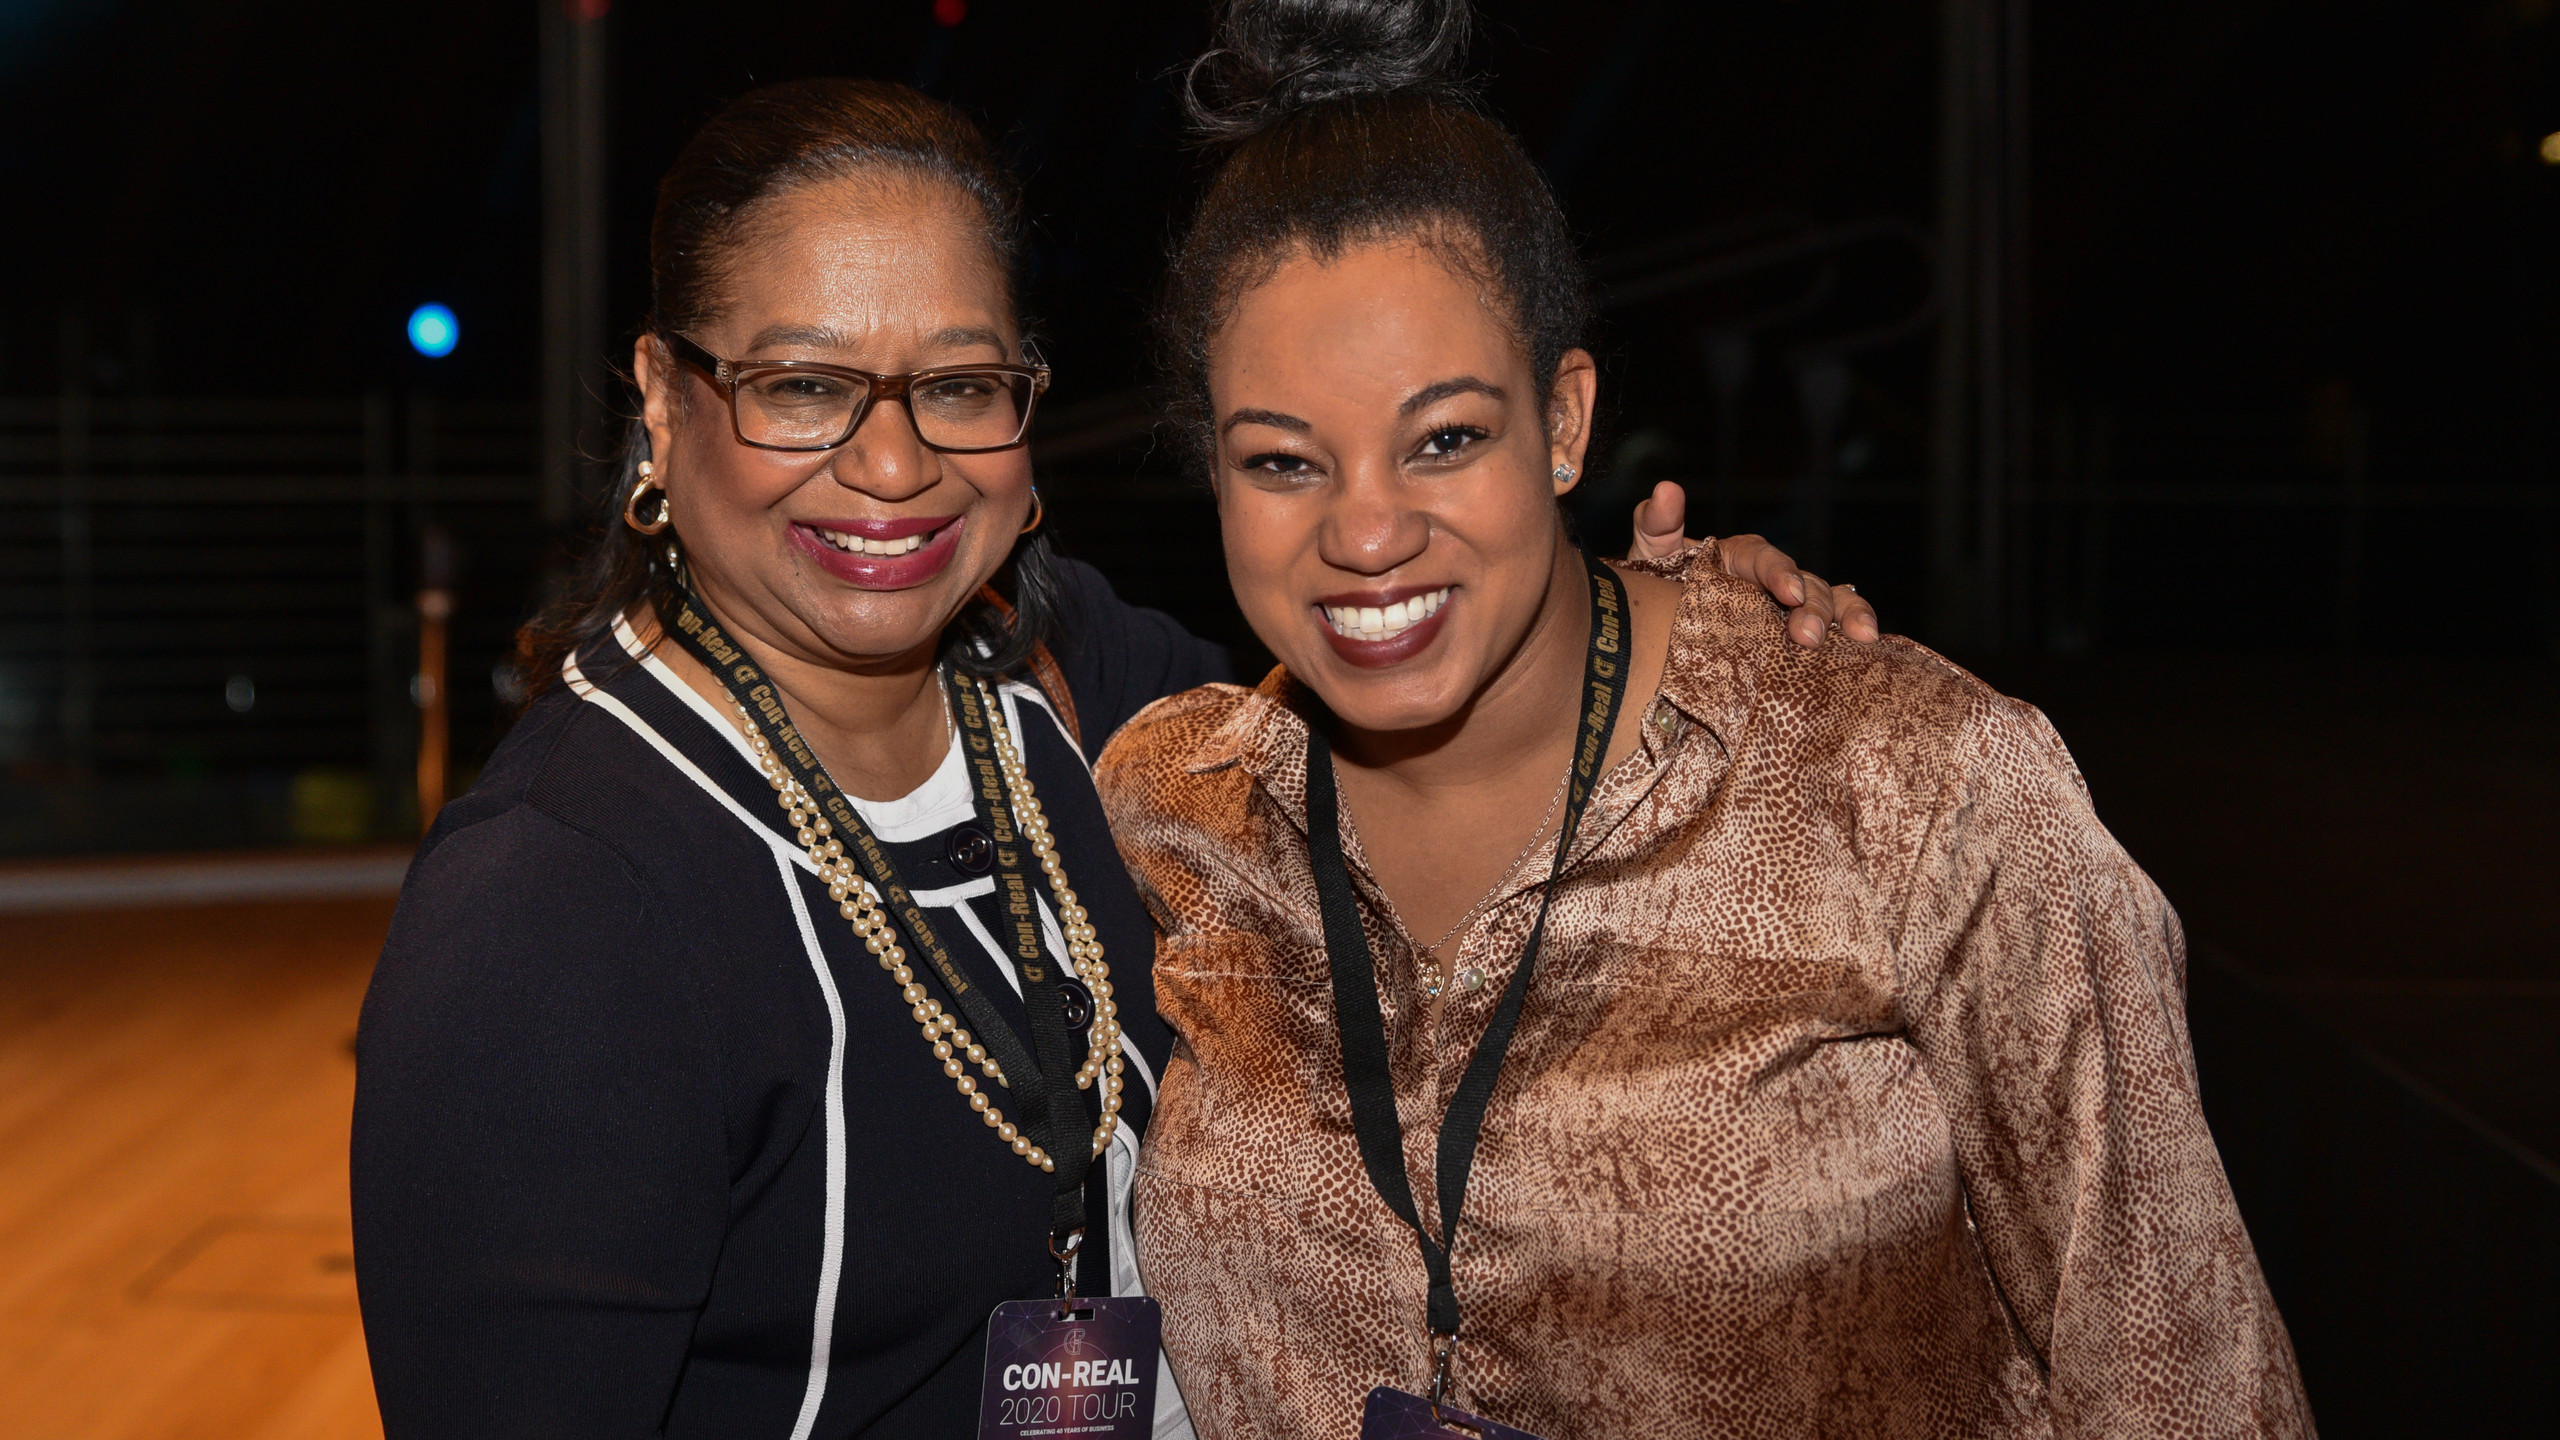 Con-Real's PR Manager Gina Alley and event attendee